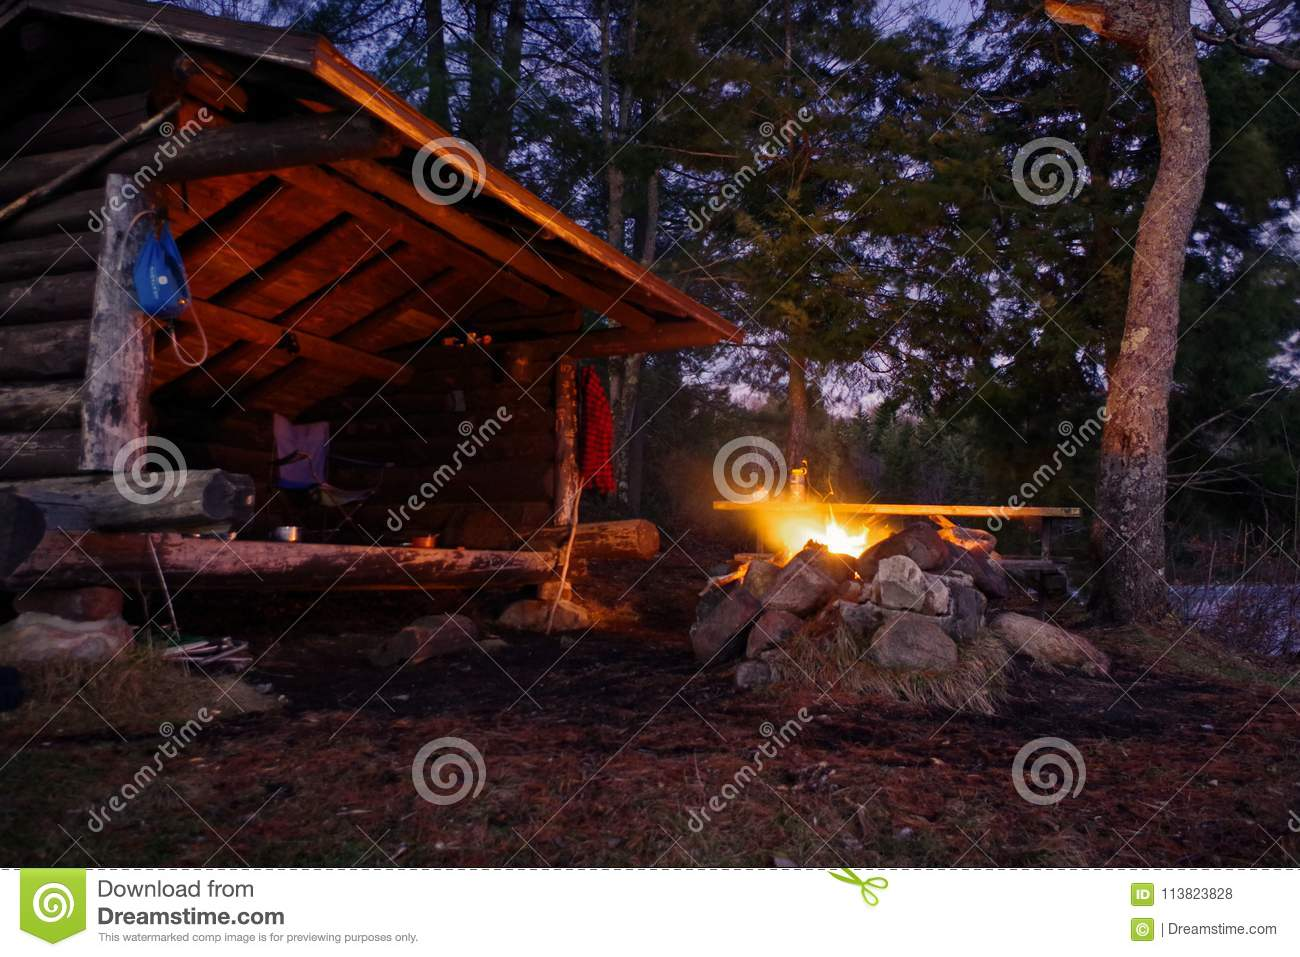 Adirondack Lean to Bushcraft camp shelter with fire at night in the mountains.